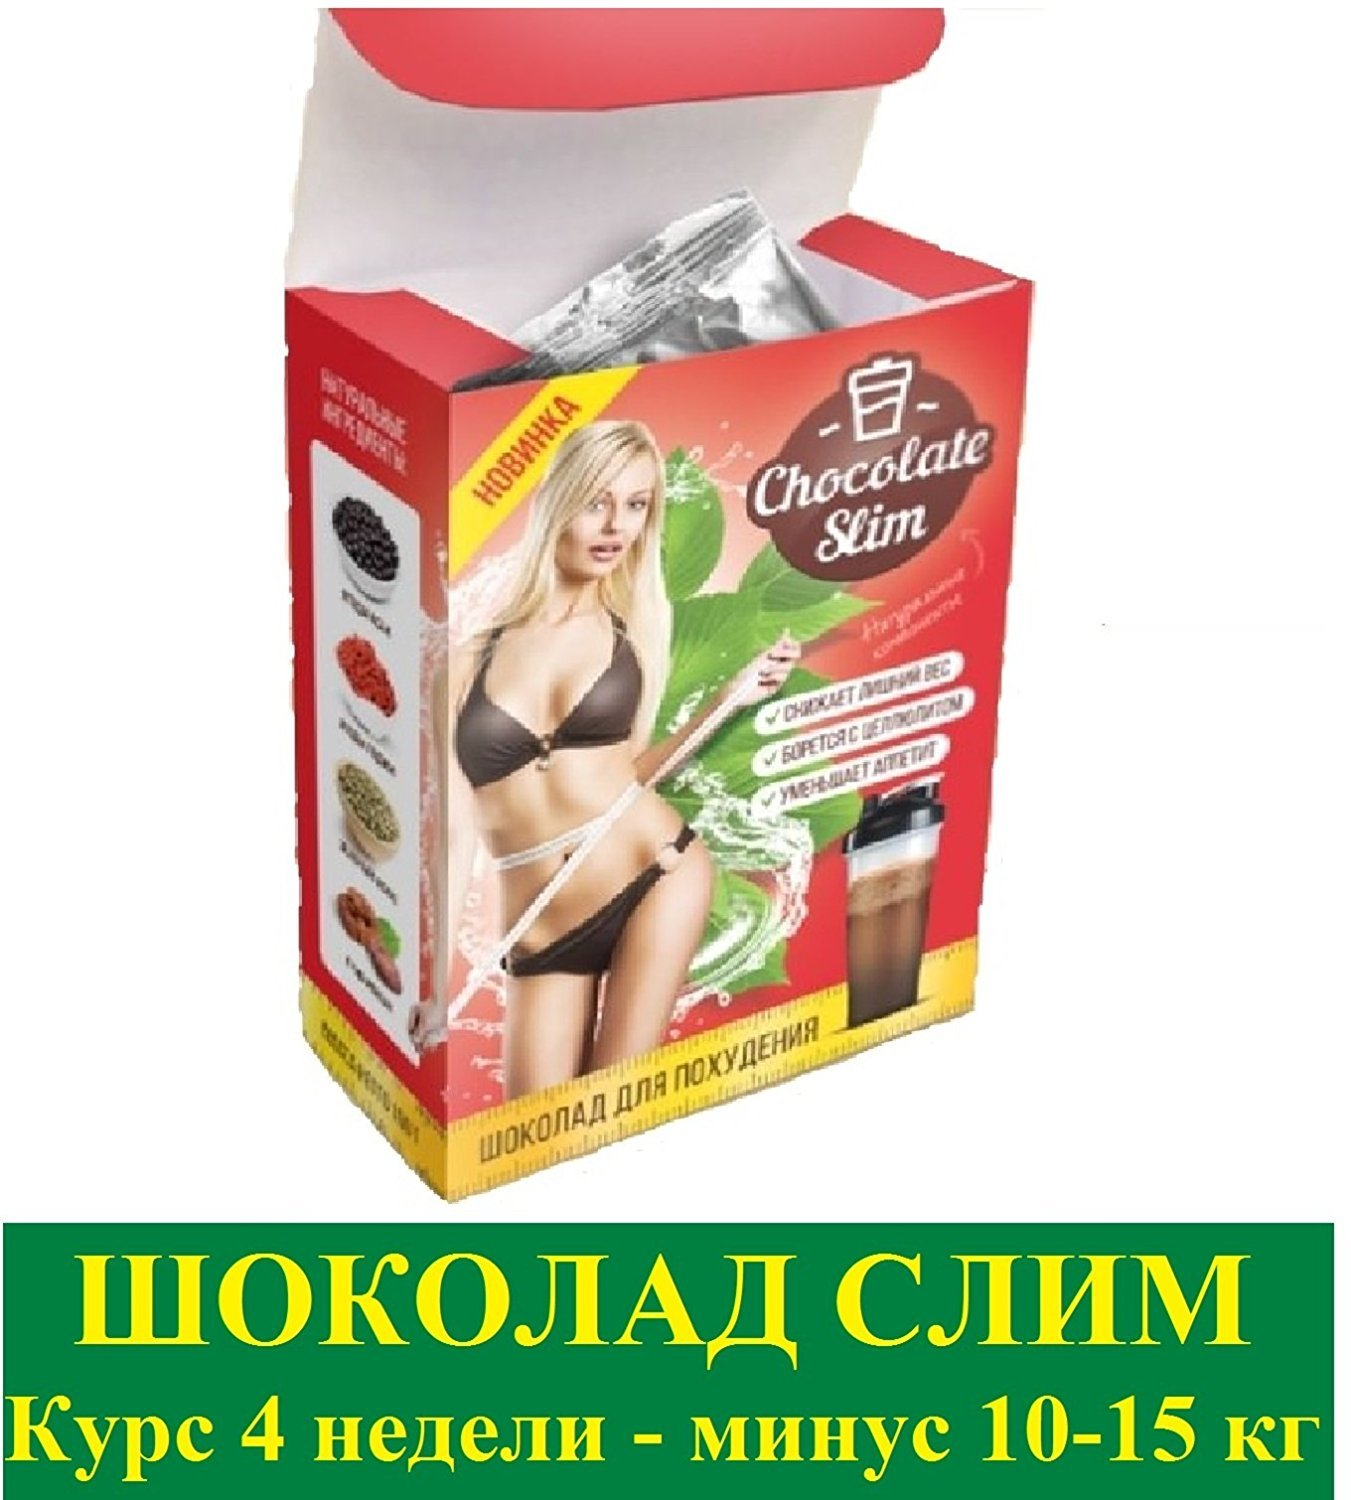 Chocolate Slim for weight loss, fat burner drink 100% шоколад слим (800g /28.21 oz) by Chocolate Ltd (Image #1)